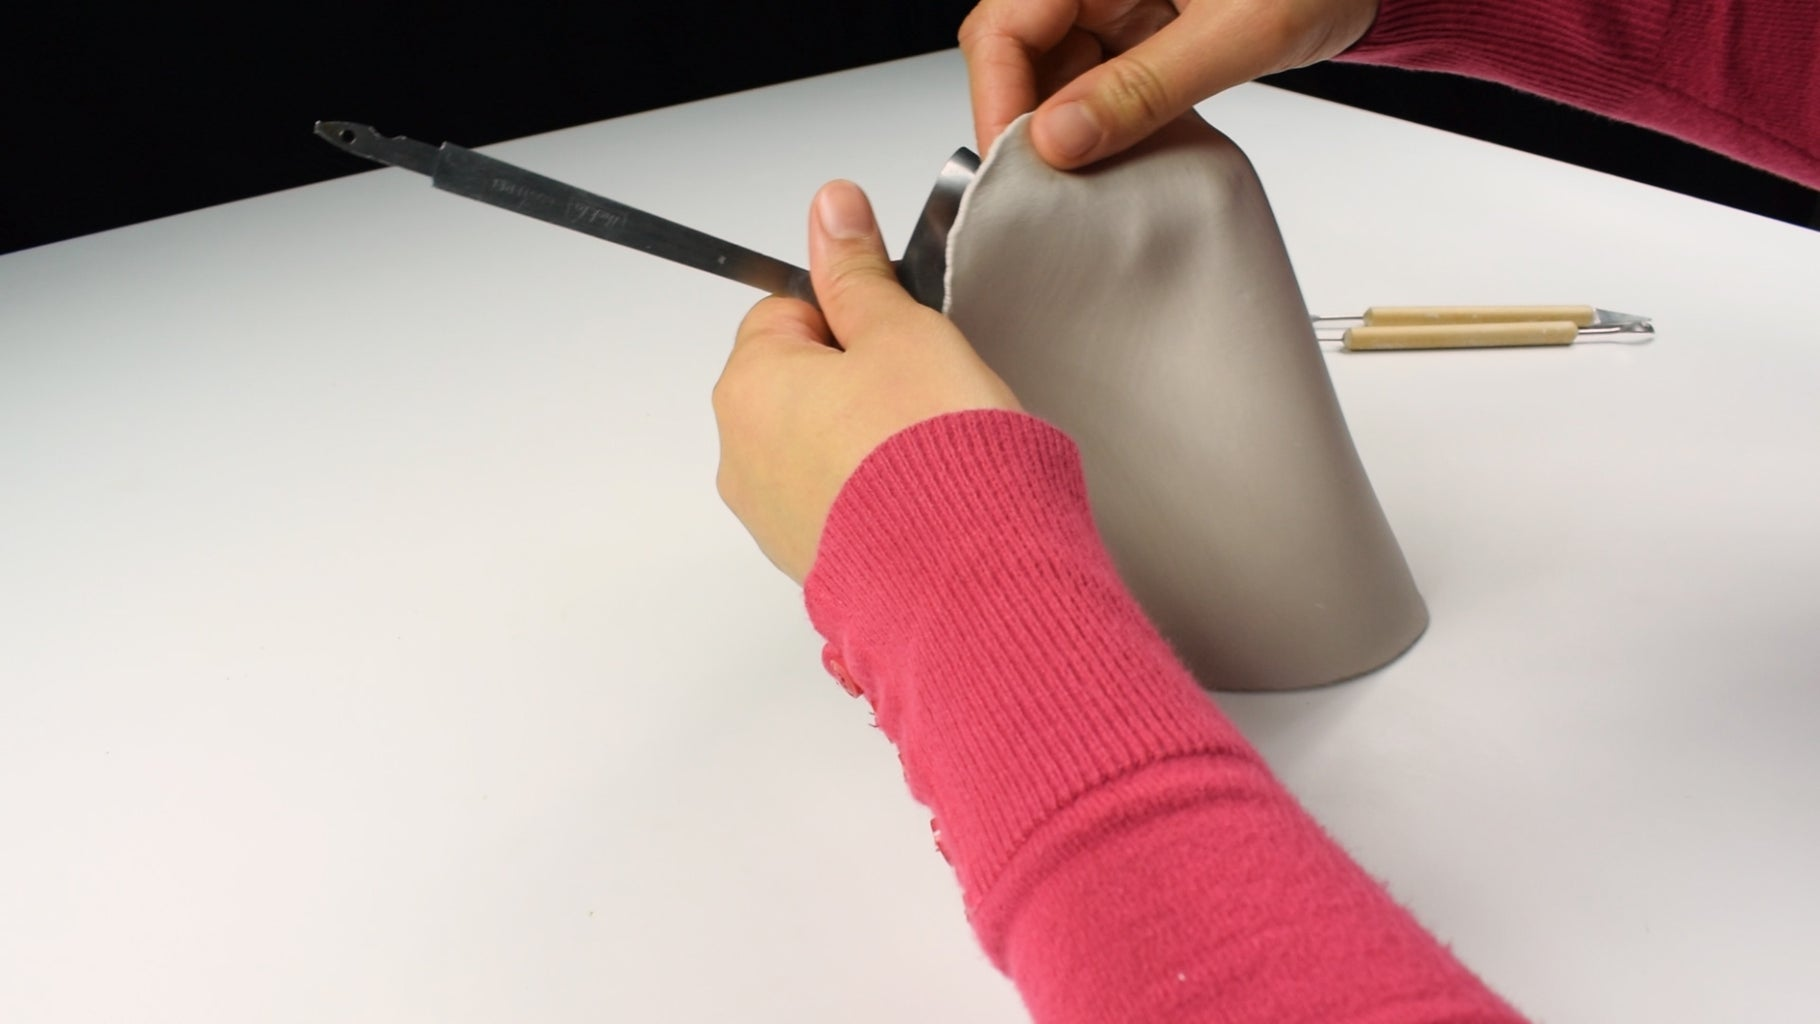 Cover the Ladle With Paper Clay